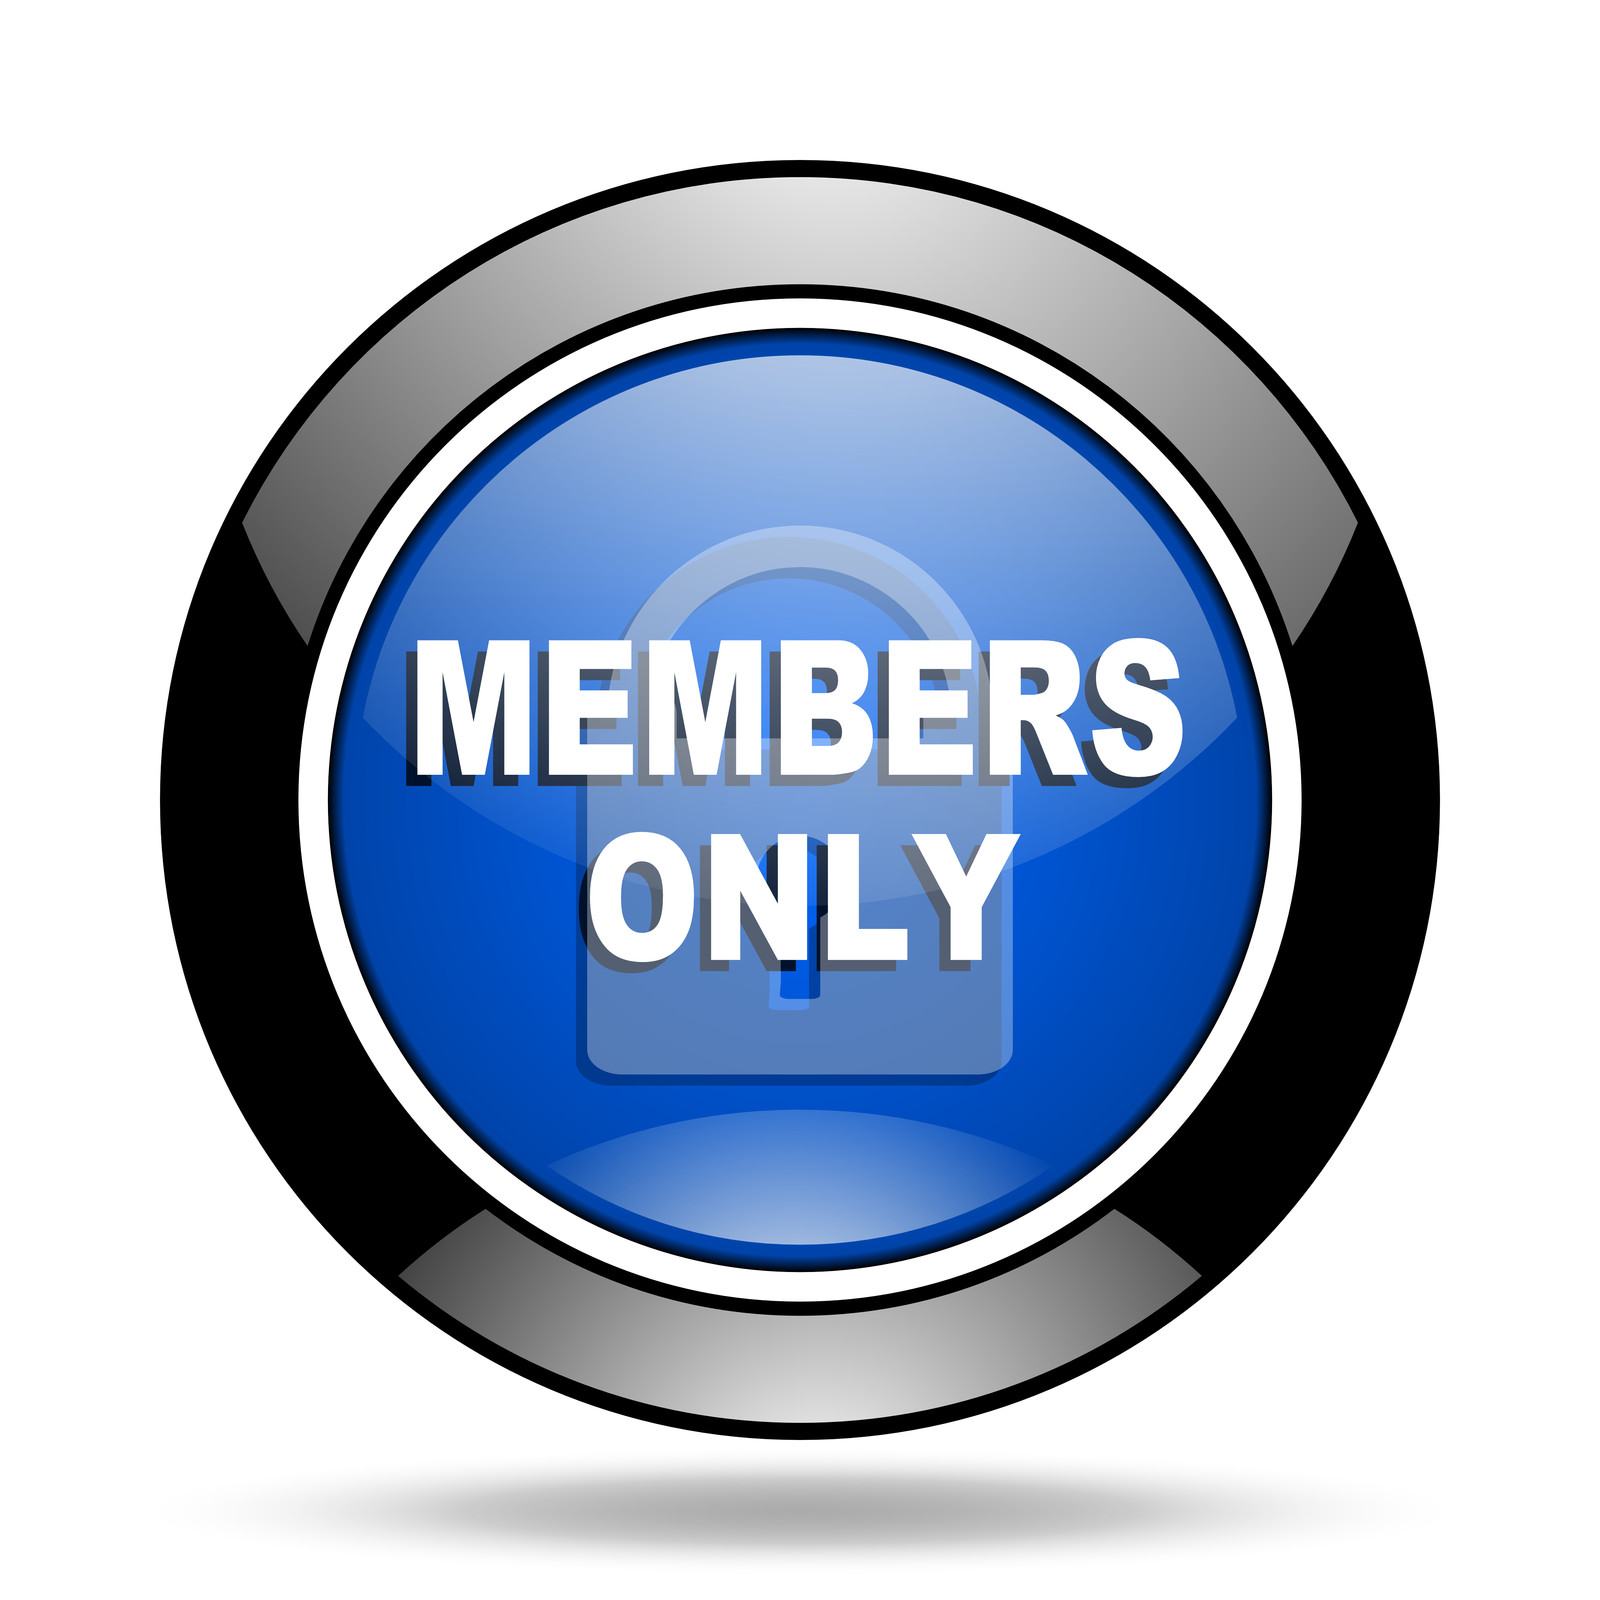 Benefits for Members Only